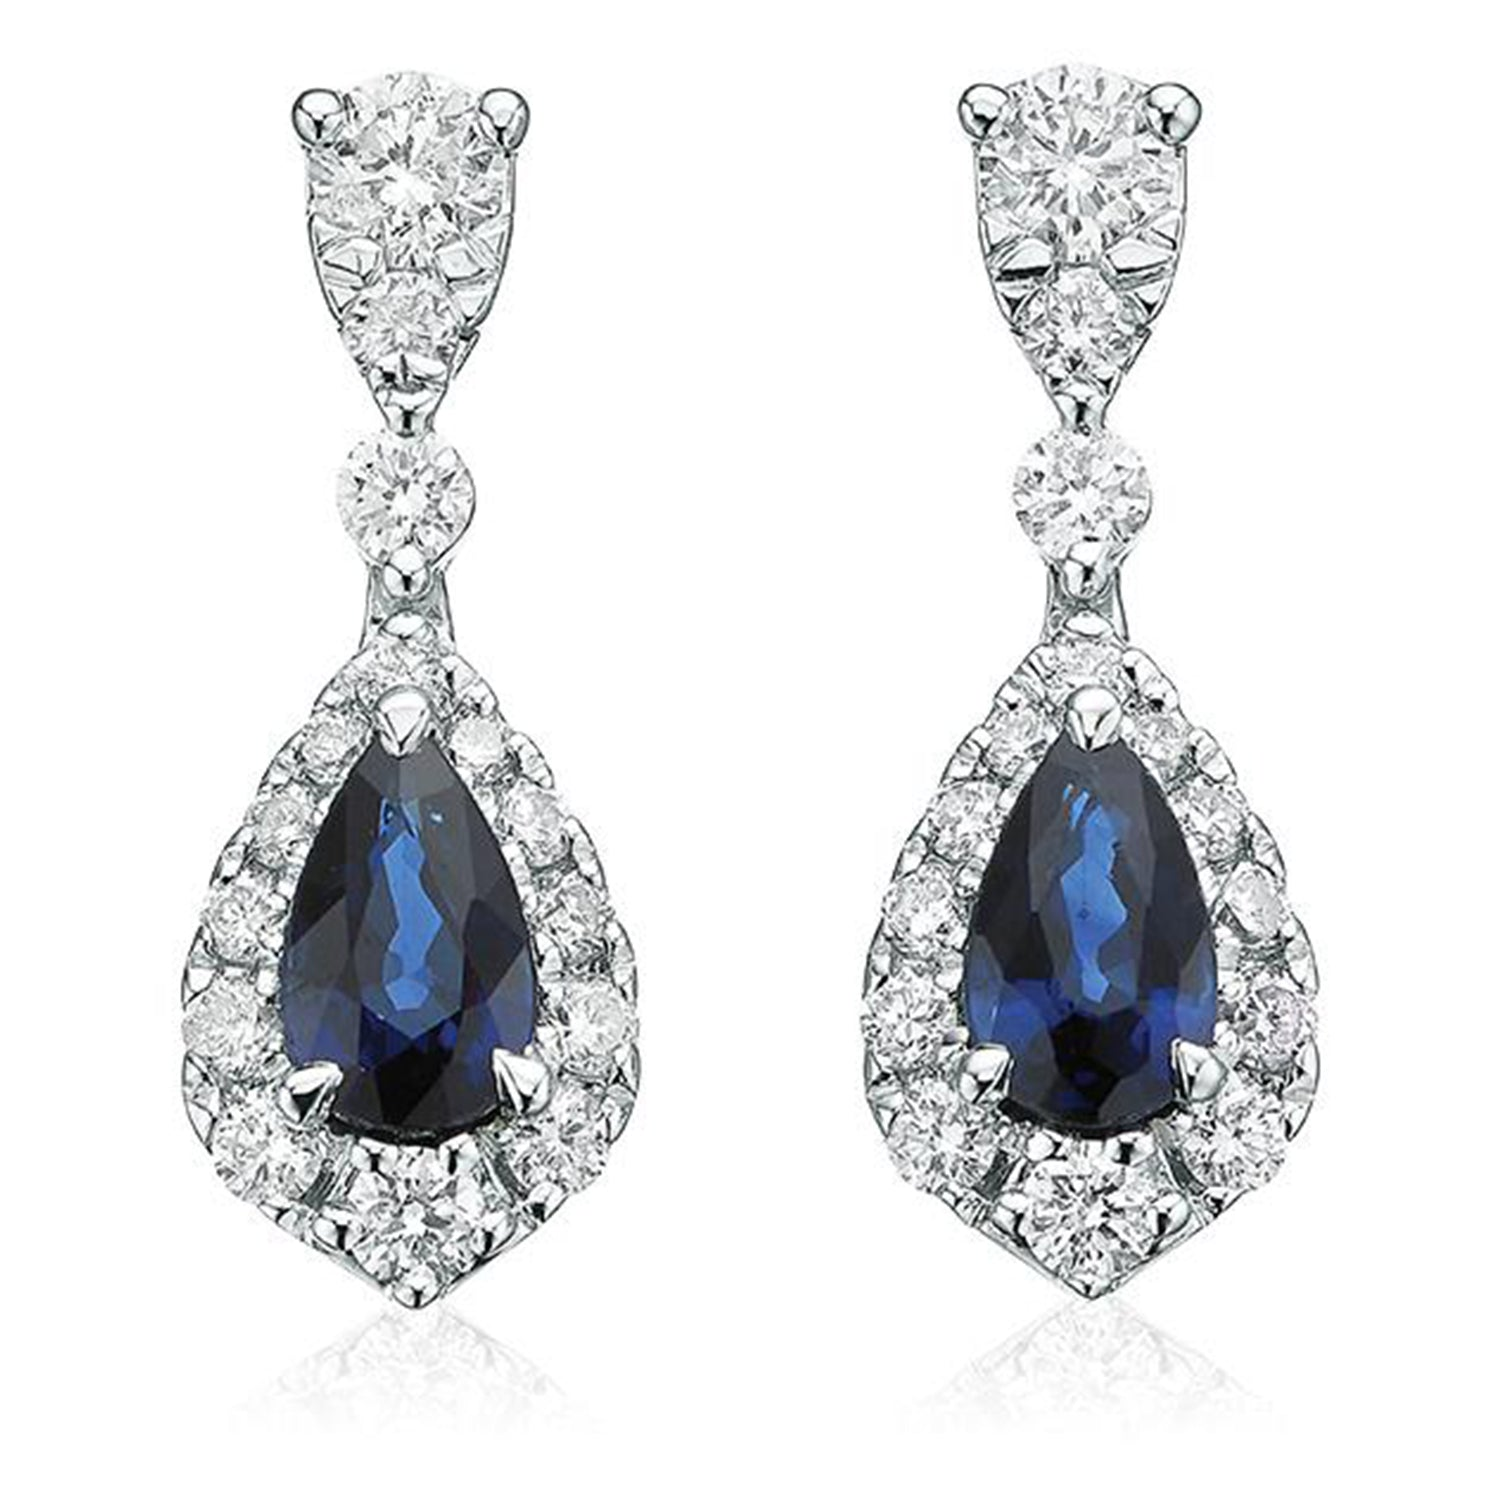 9ct White Gold Pear & Round Brilliant Cut  0.30 CARAT tw of Diamonds Natural Sapphire